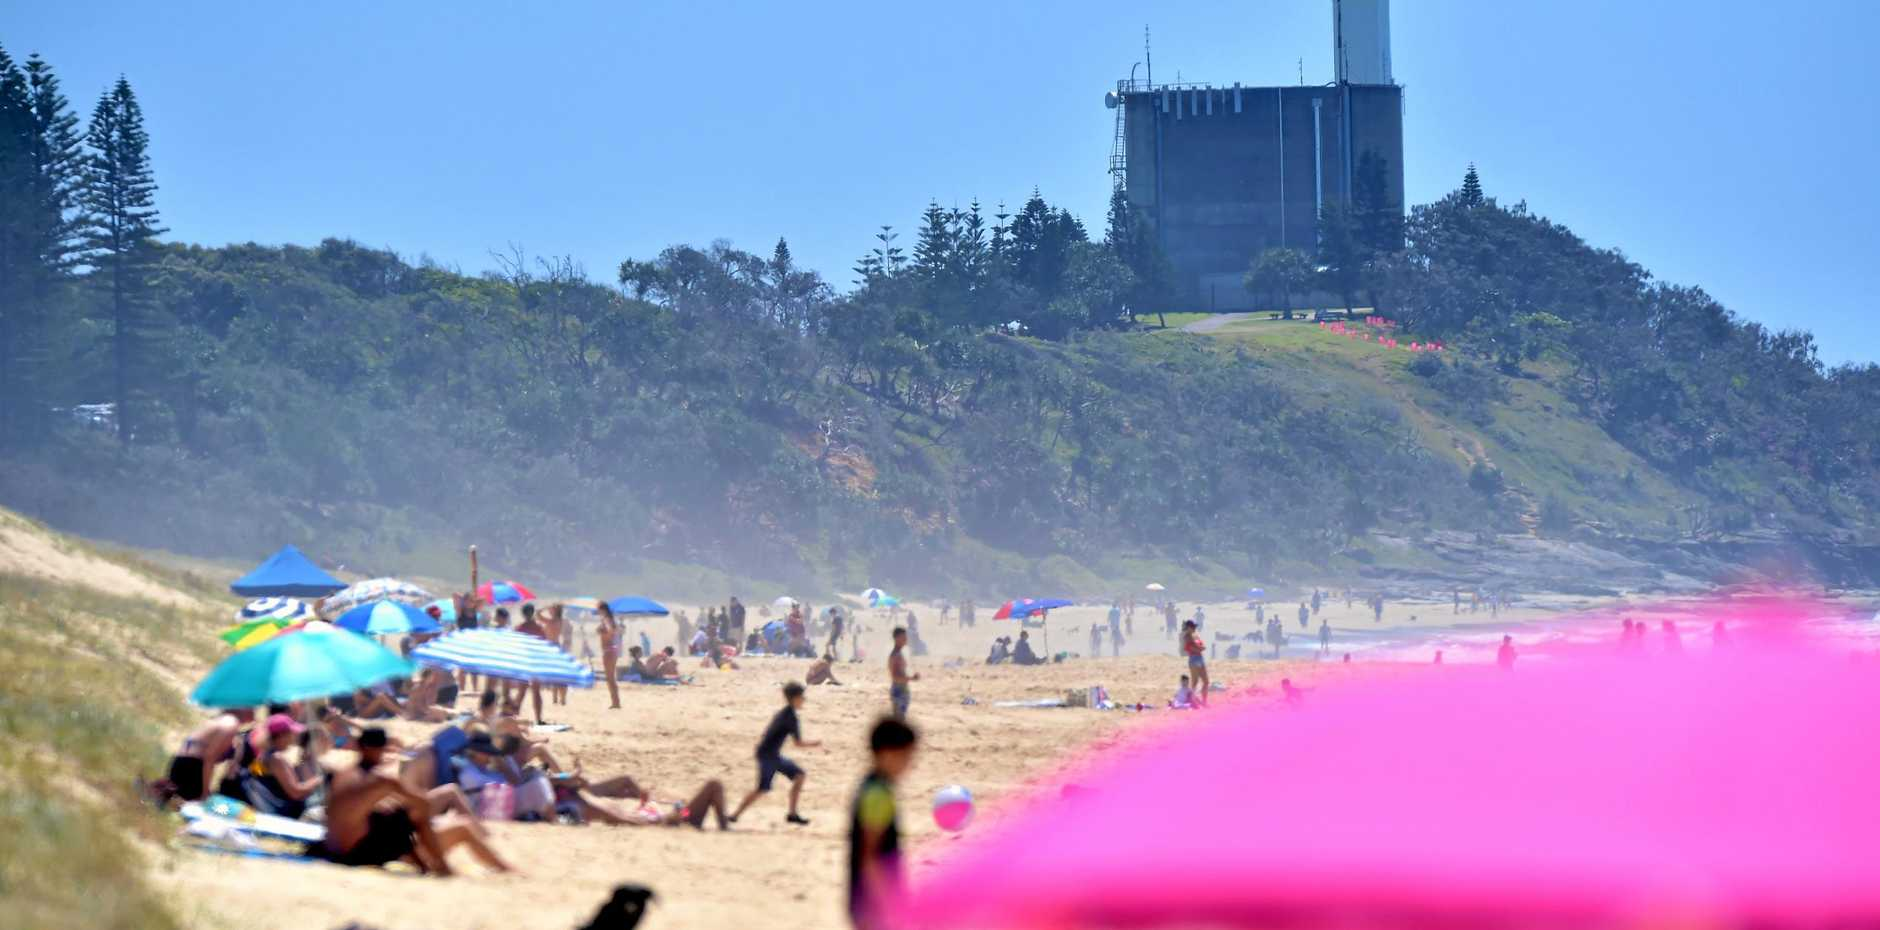 A man was taken to hospital last night after he nearly drowning at Buddina beach.